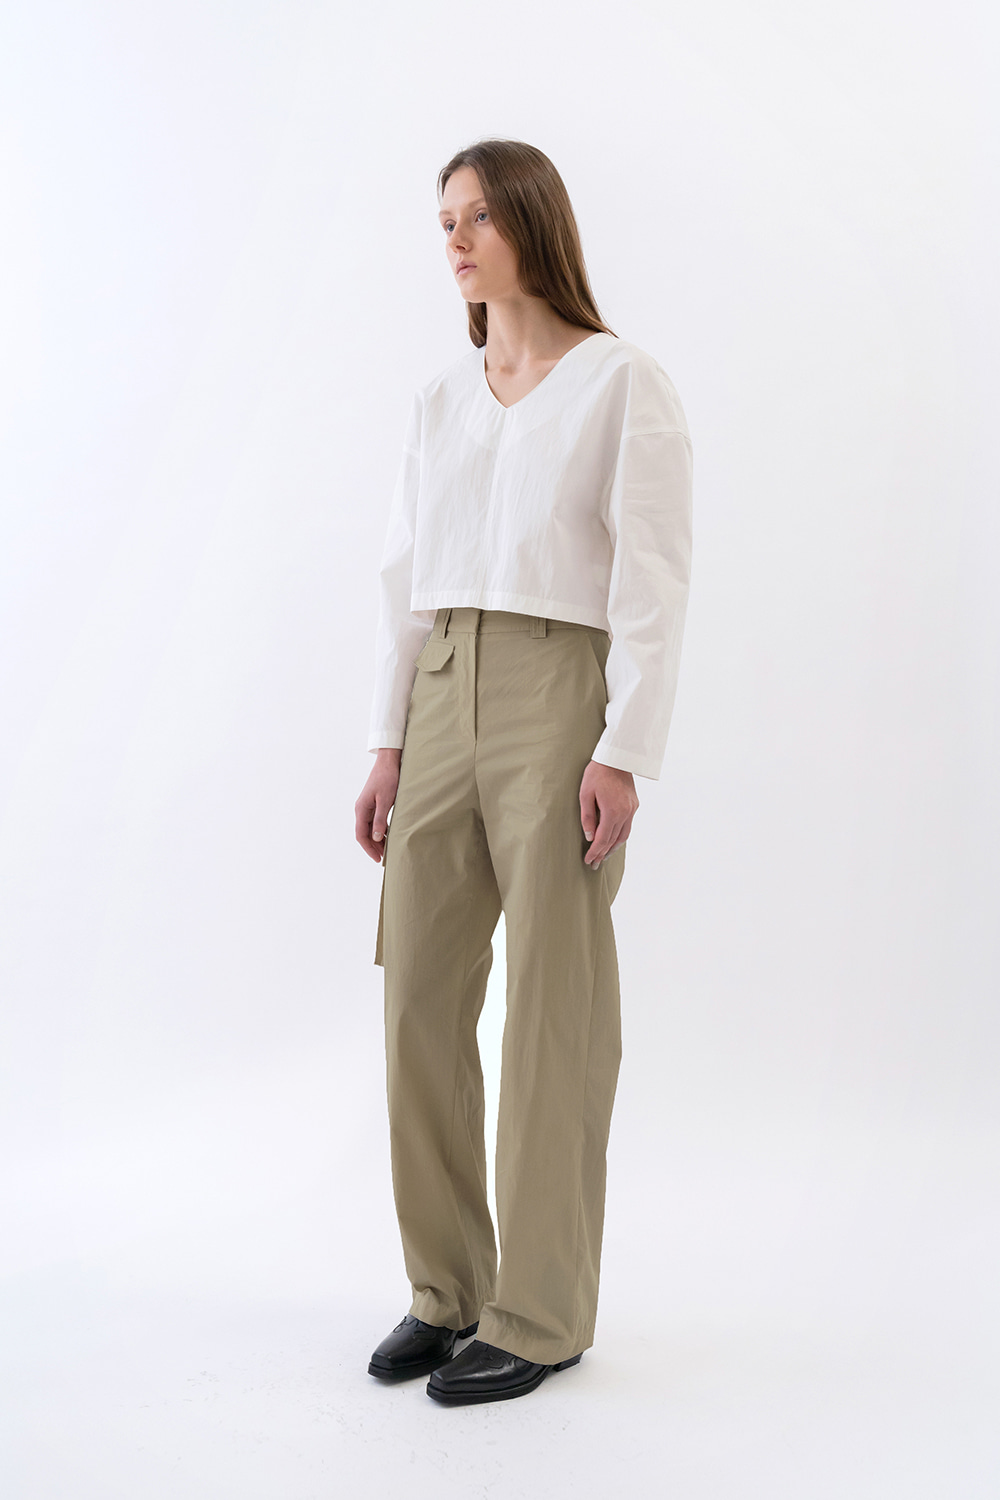 One Pocket Cargo Pants Women [Dark Beige]